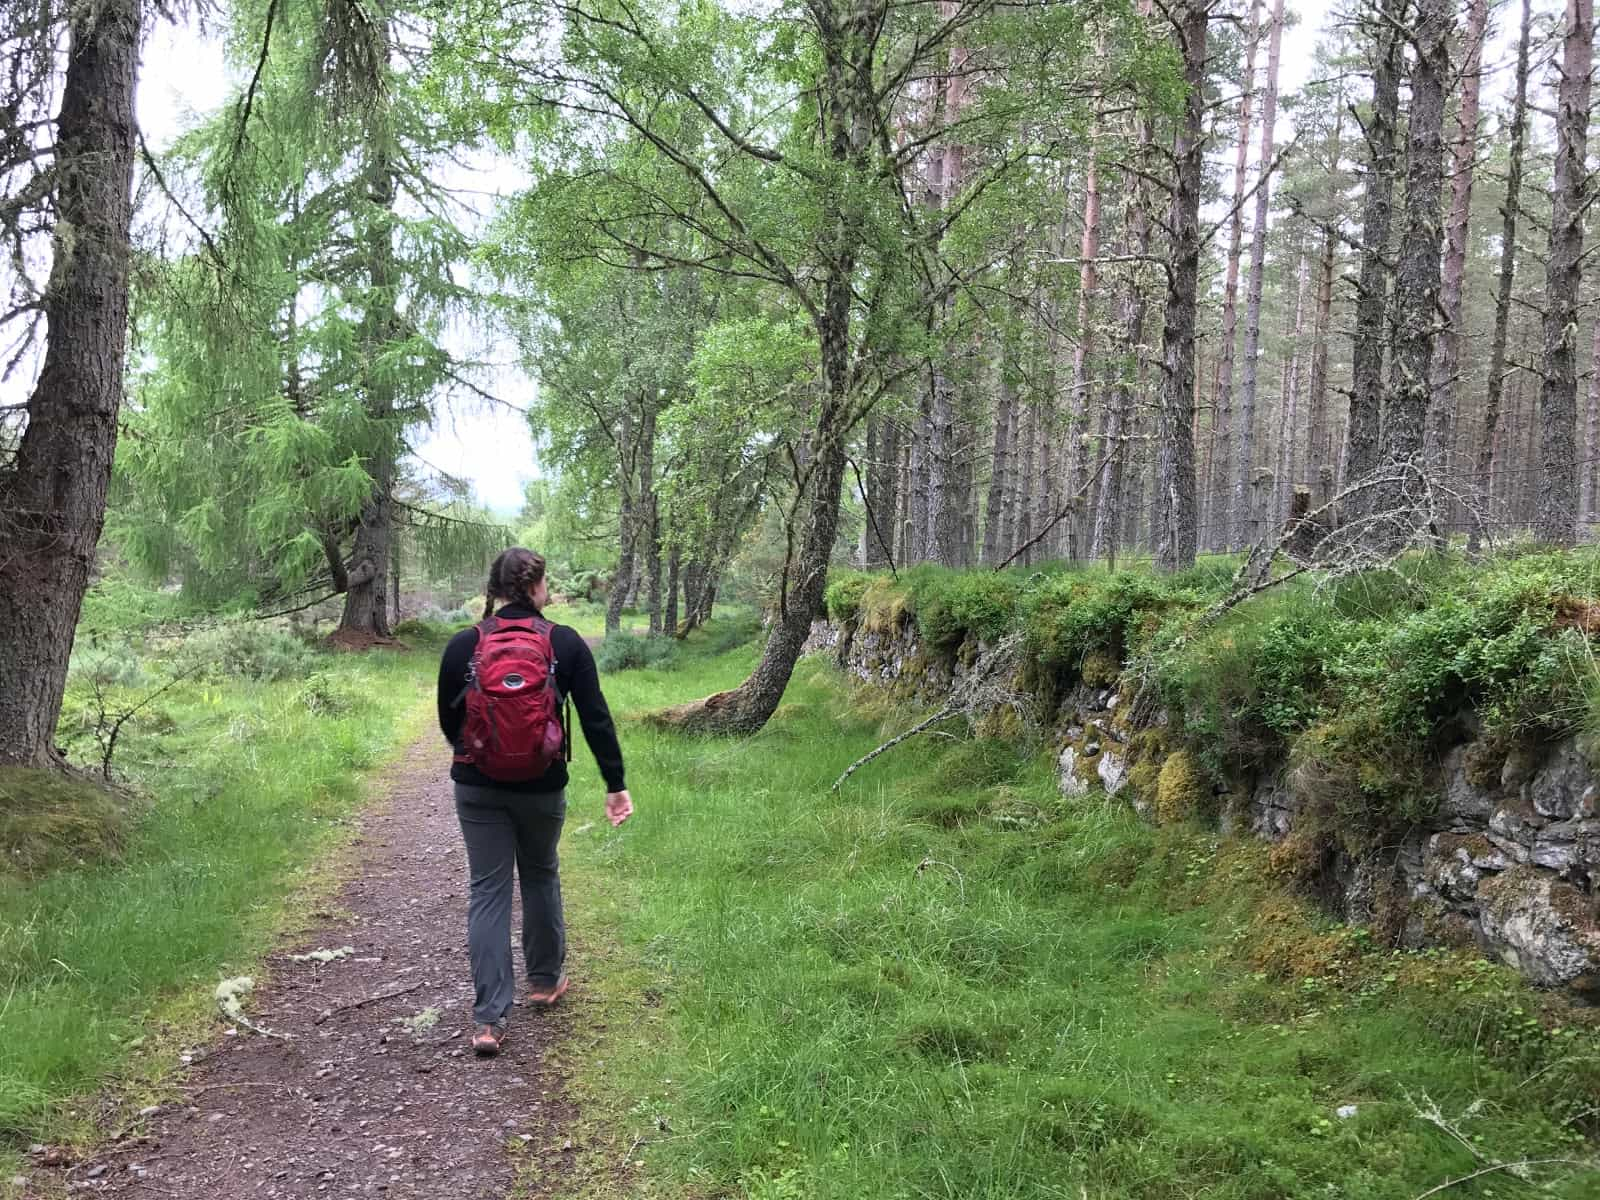 Blackfold to Inverness, Great Glen Way walking Holidays